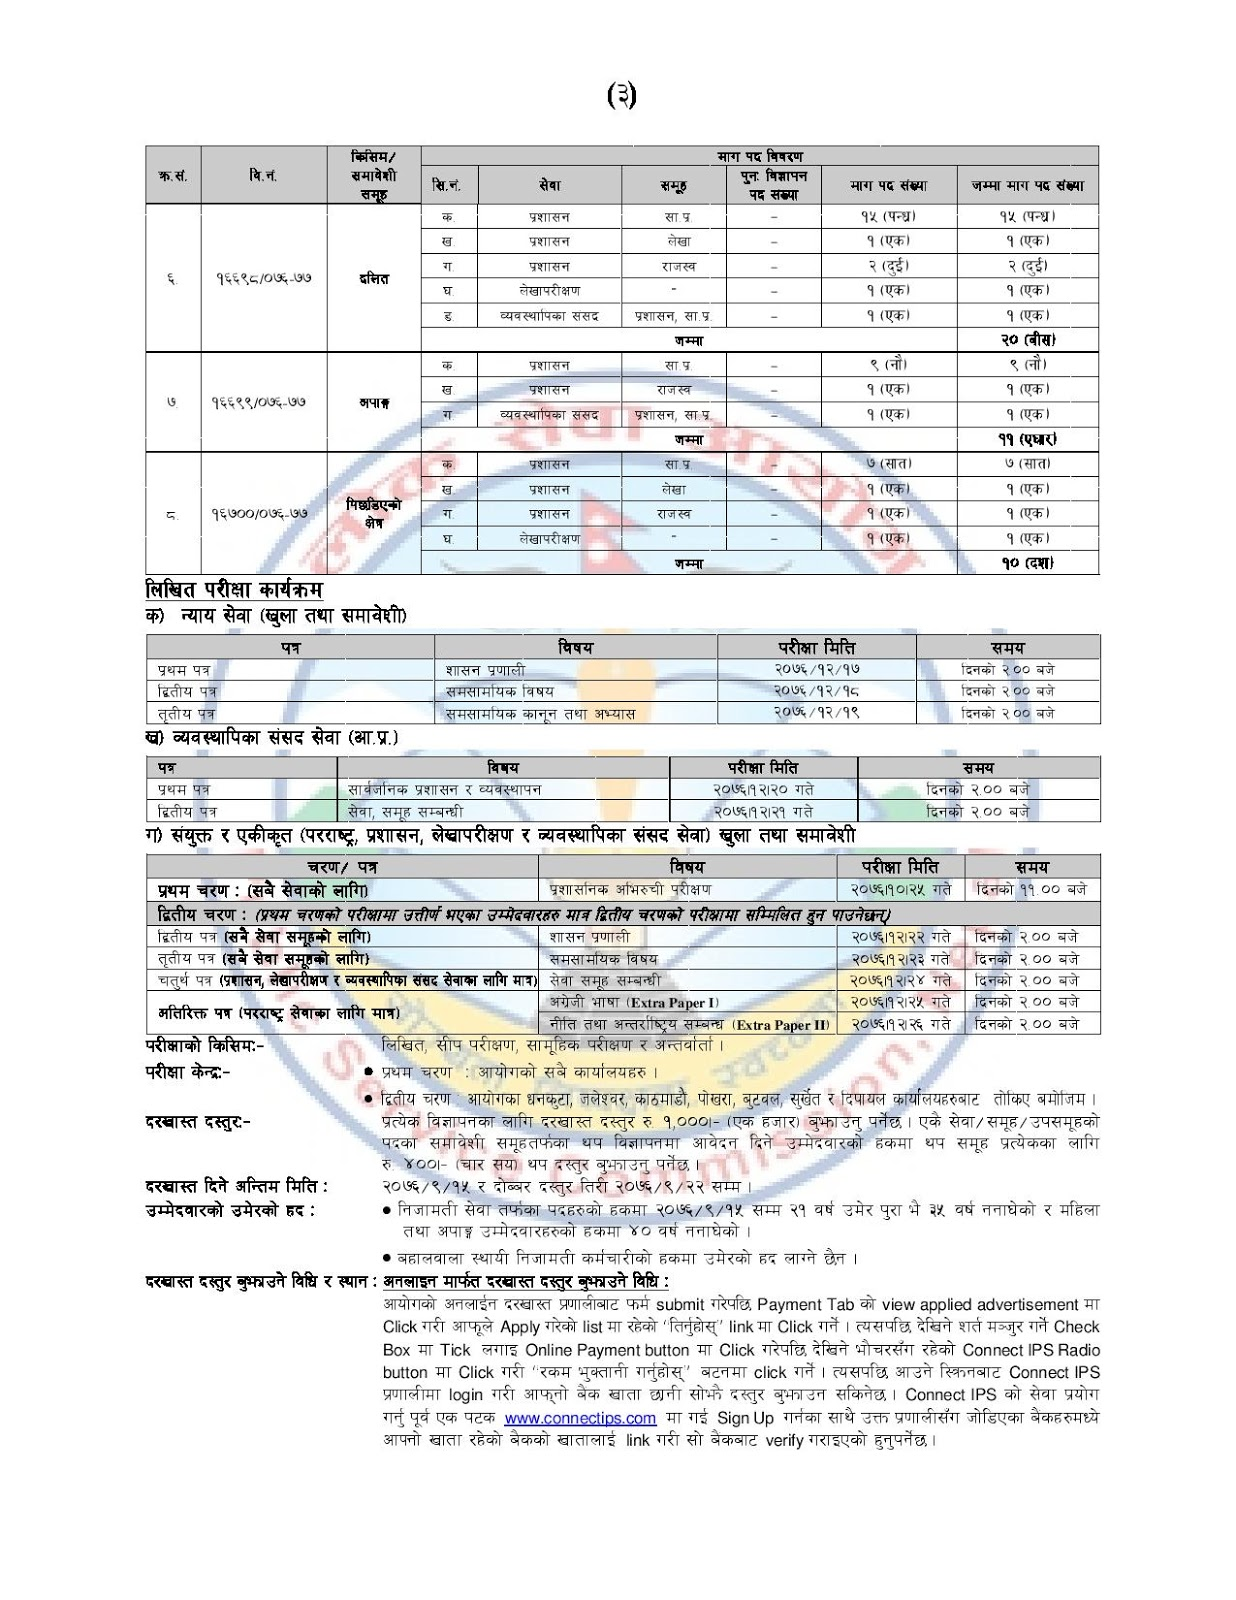 A Lot of Vacancies Announced for Section Officer - Gazetted Third Class 2076 - 2019